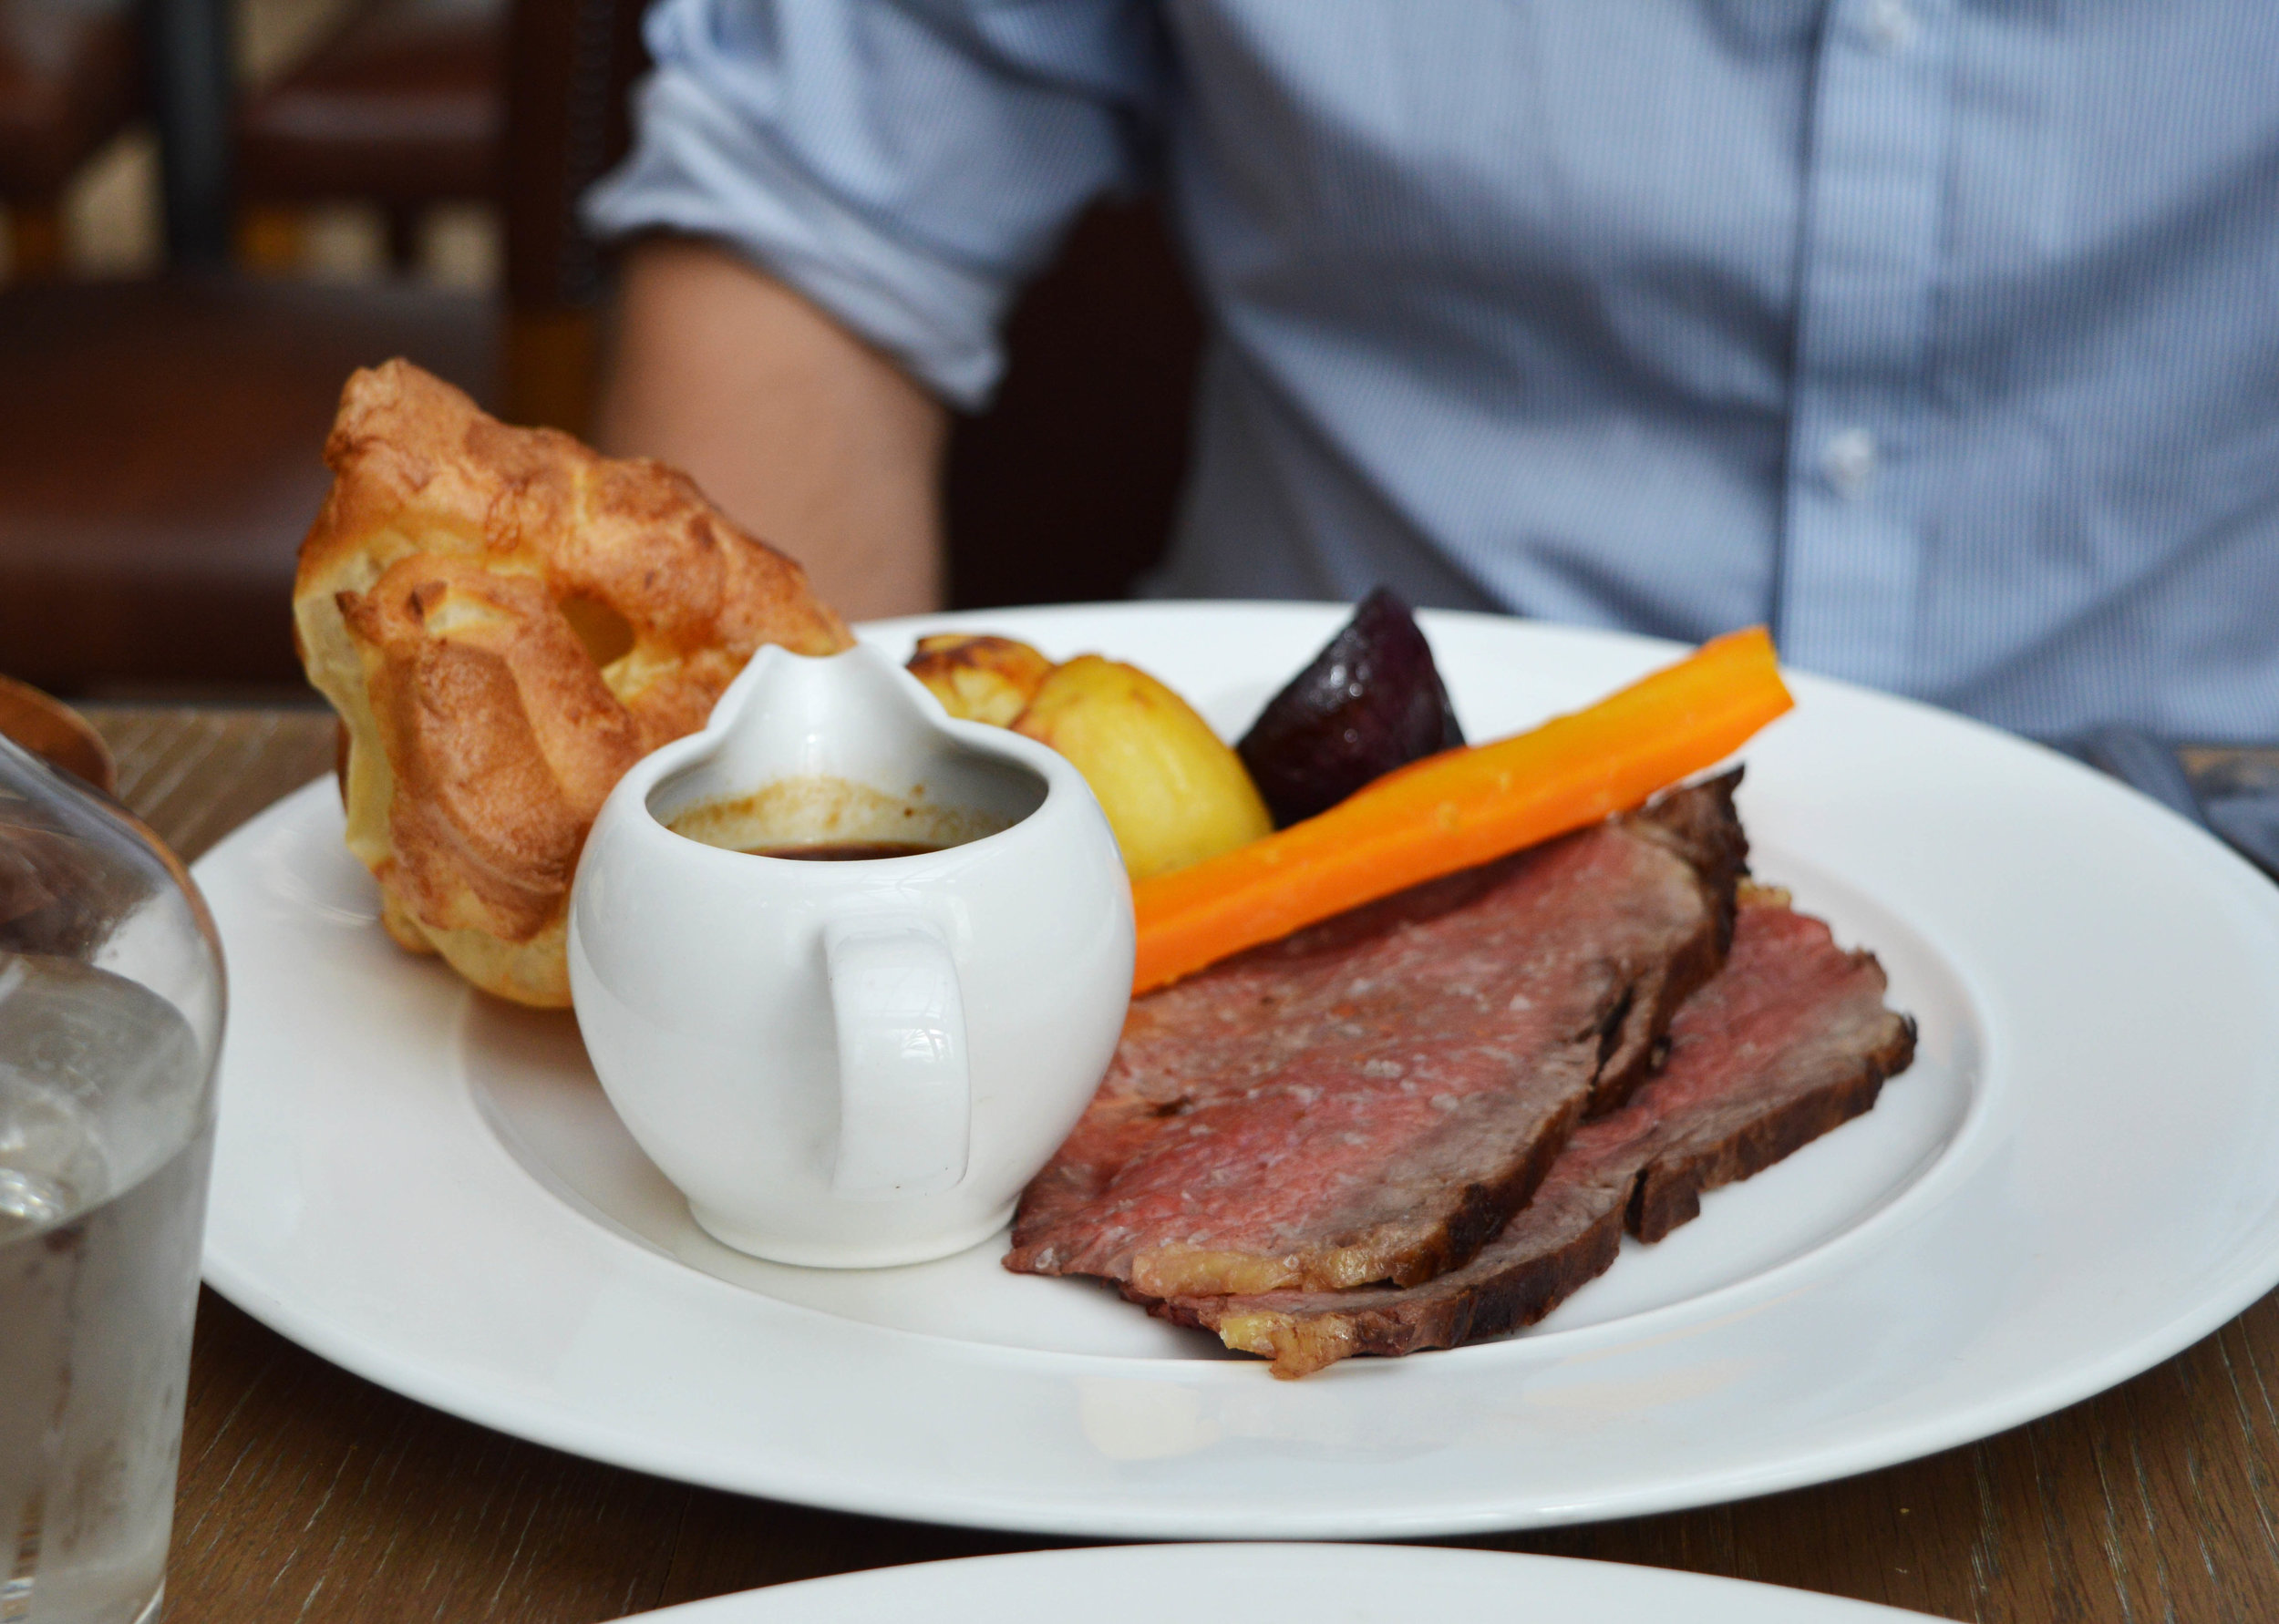 Sunday Roast at the Royal York Hotel